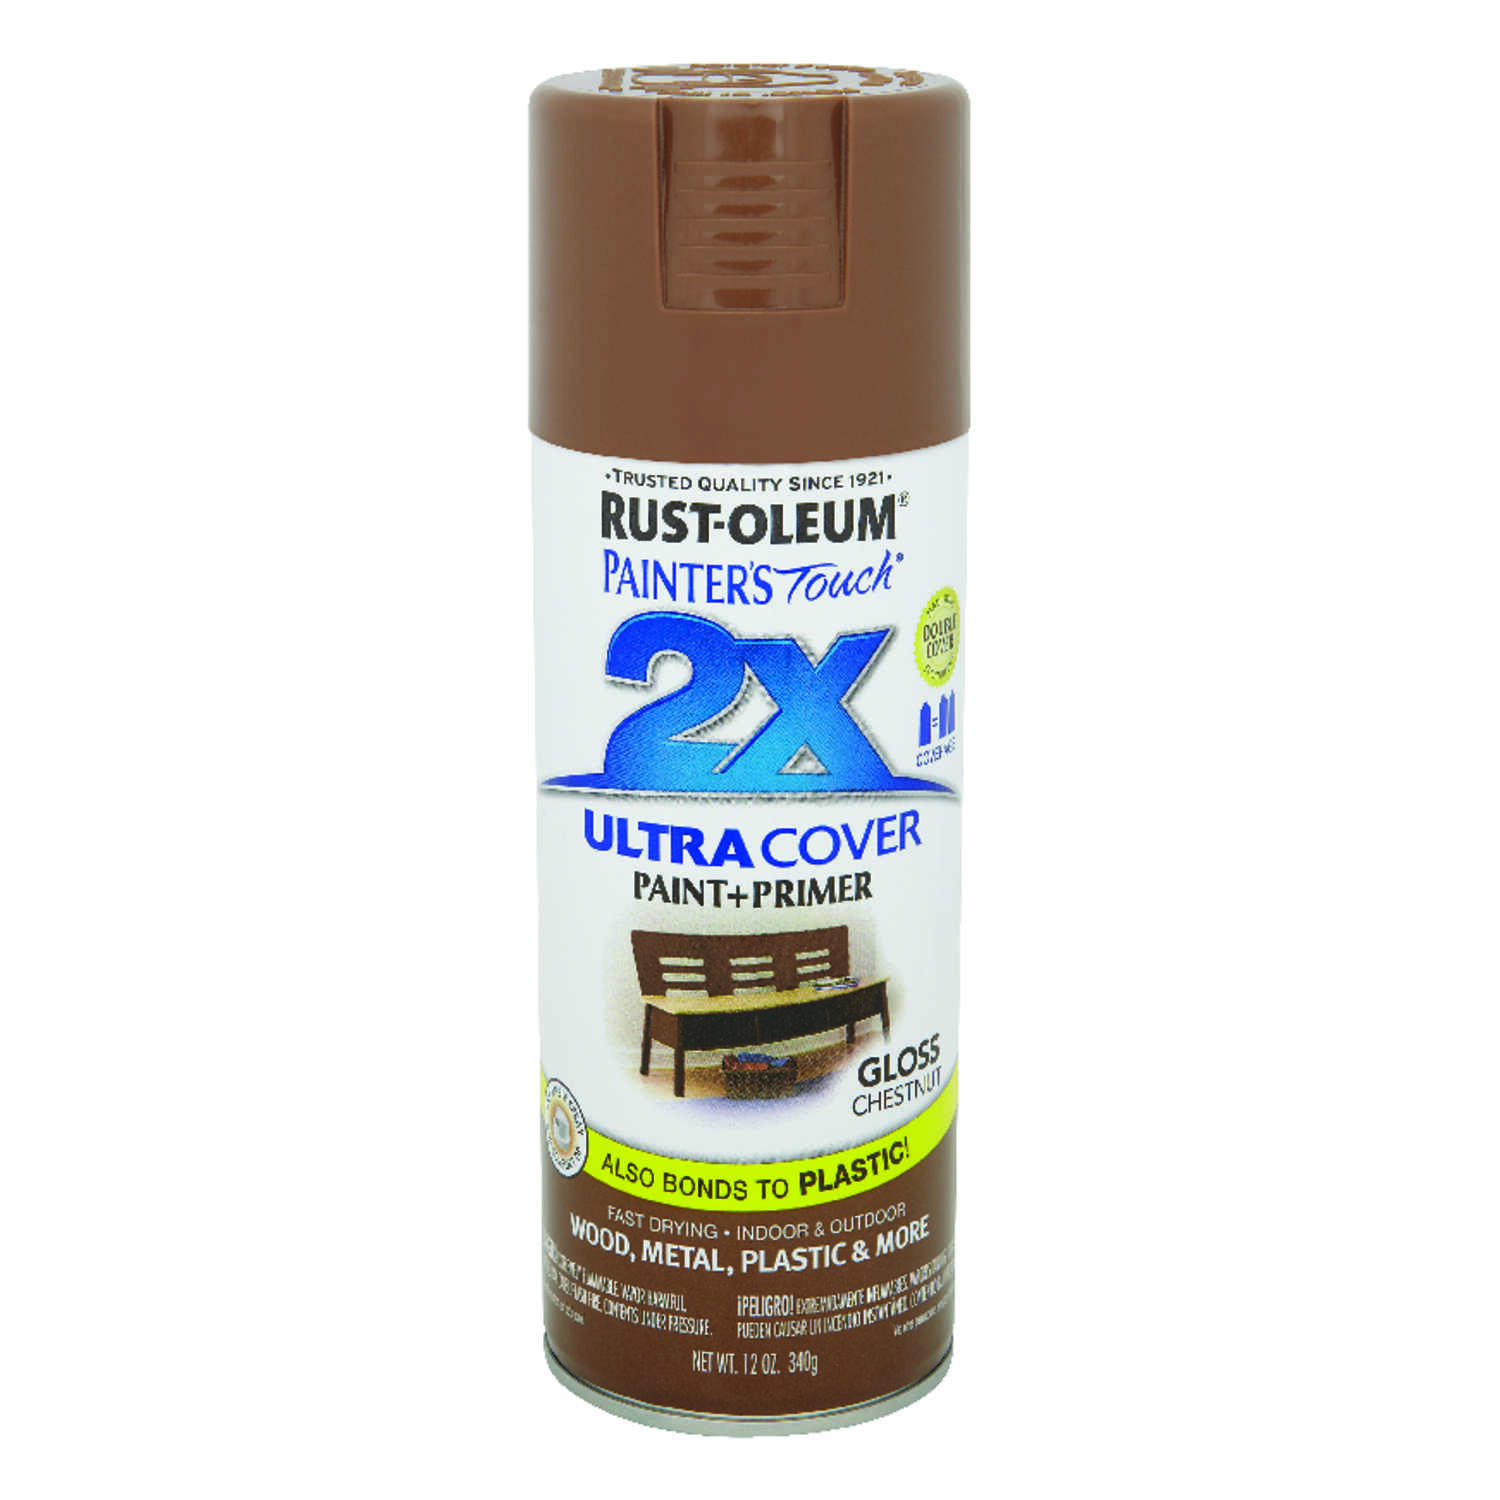 Rust-Oleum  Painter's Touch Ultra Cover  Gloss  Chestnut  Spray Paint  12 oz.